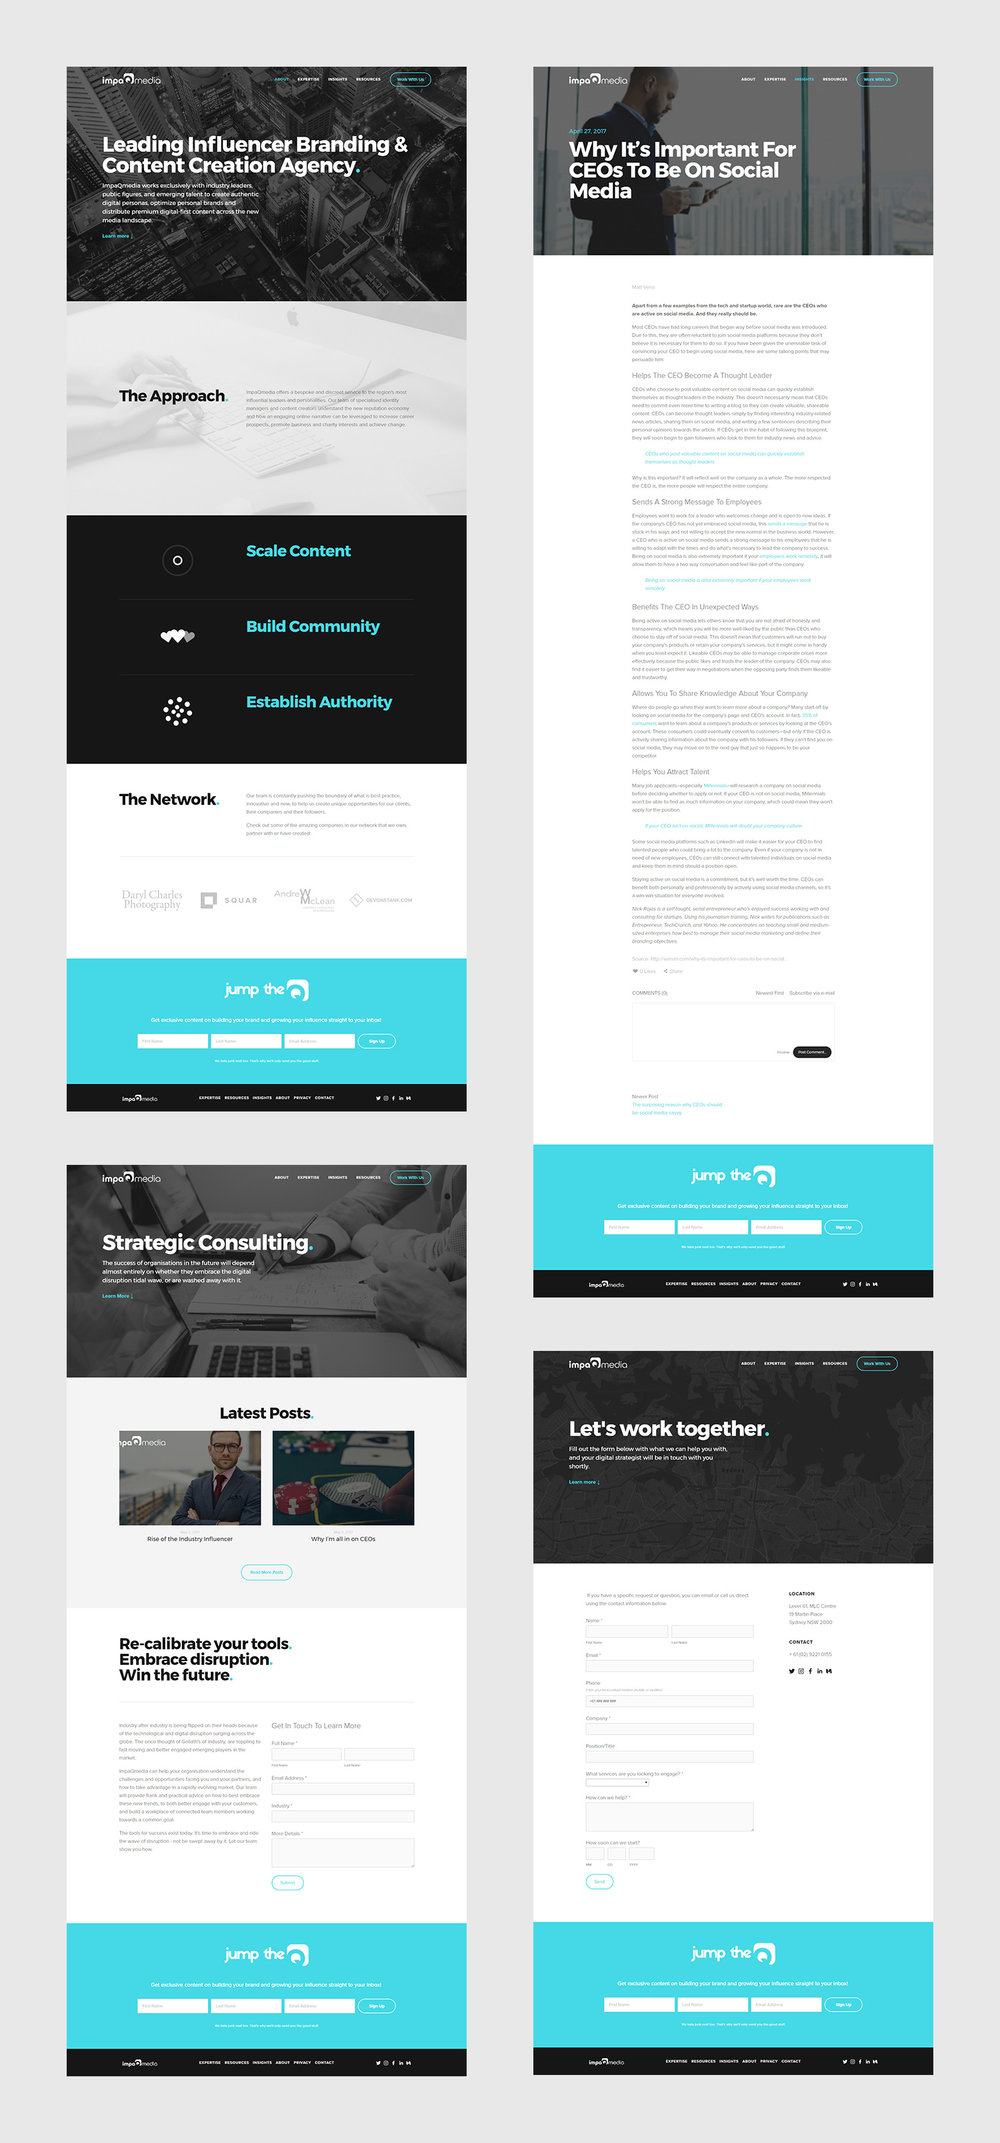 squarespace-content-creation-agency-portfolio-2.jpg